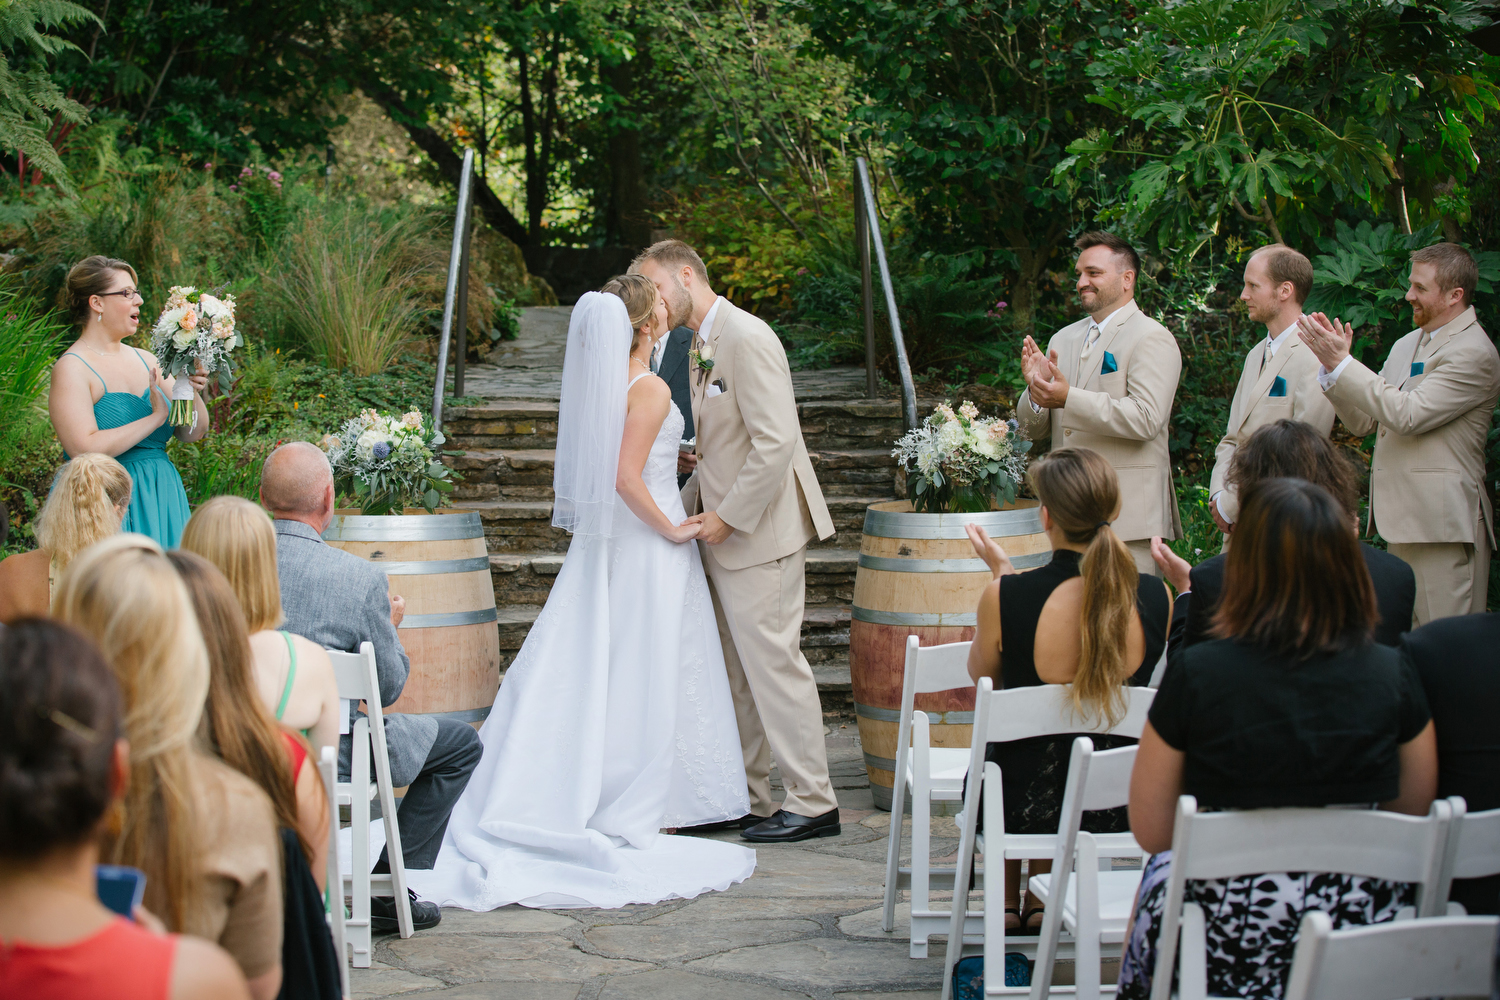 Jess and Wes kiss at their wedding at the Lake Temescal beach house in Oakland, Calif.